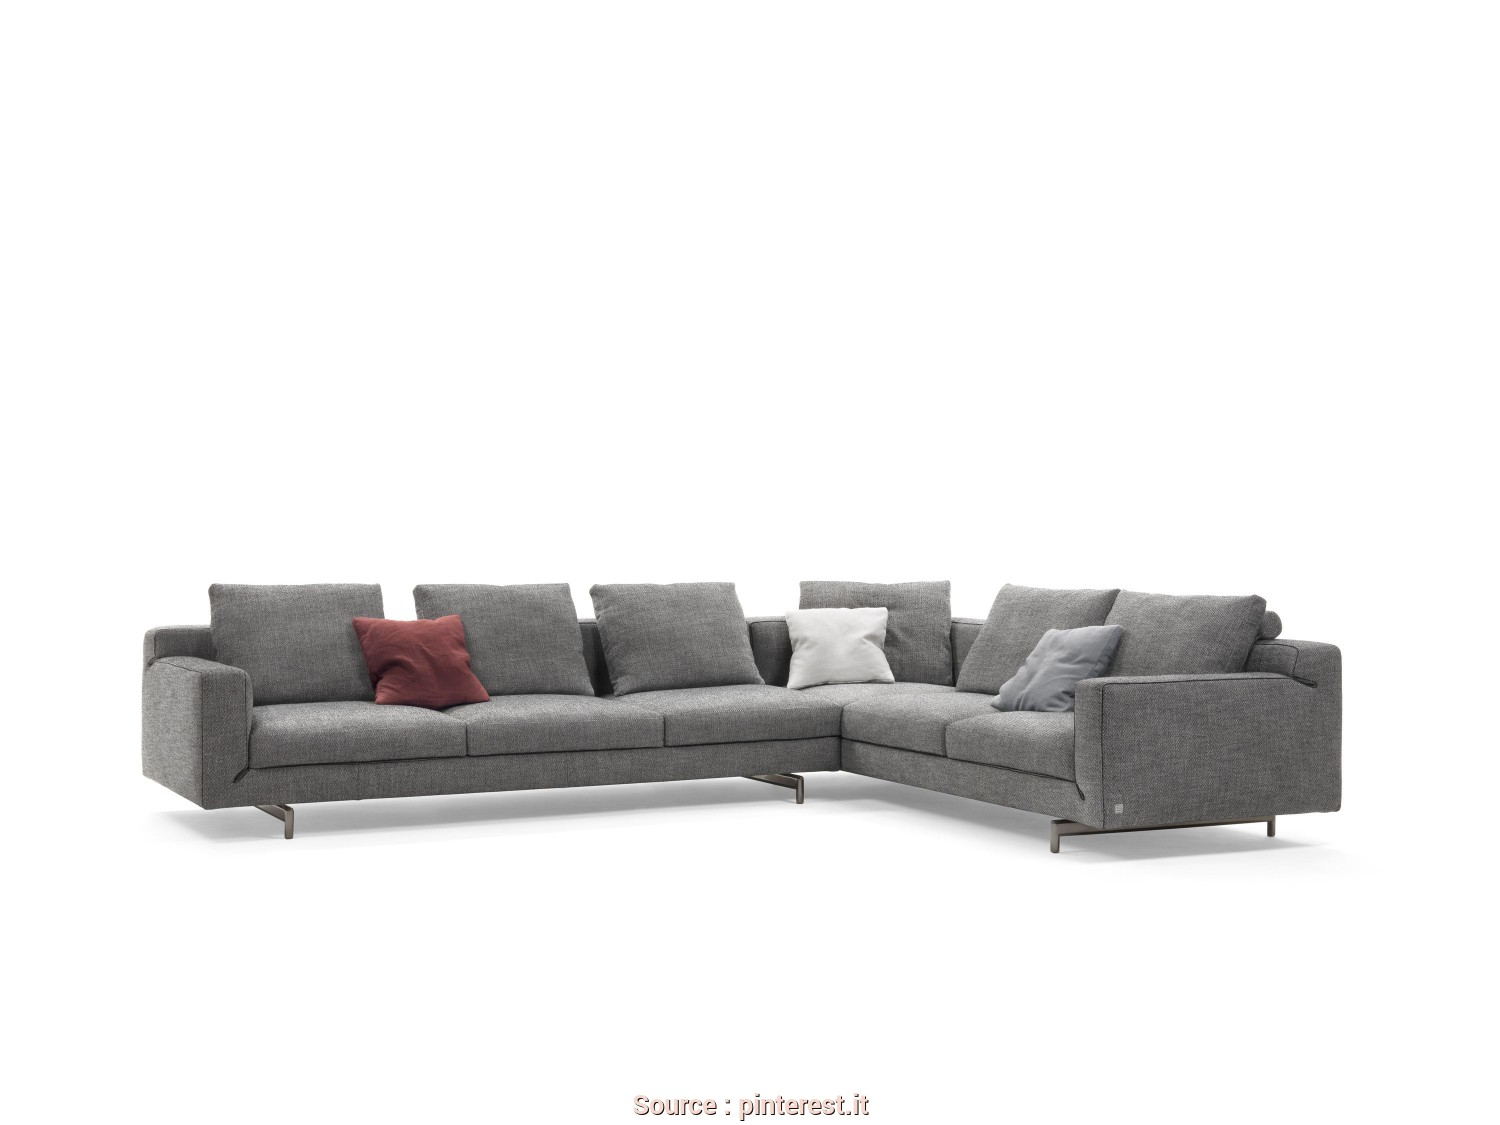 Busnelli Divani Taylor, Incredibile Taylor Sofa,Busnelli/, Prime, Ideas, The House, Pinterest